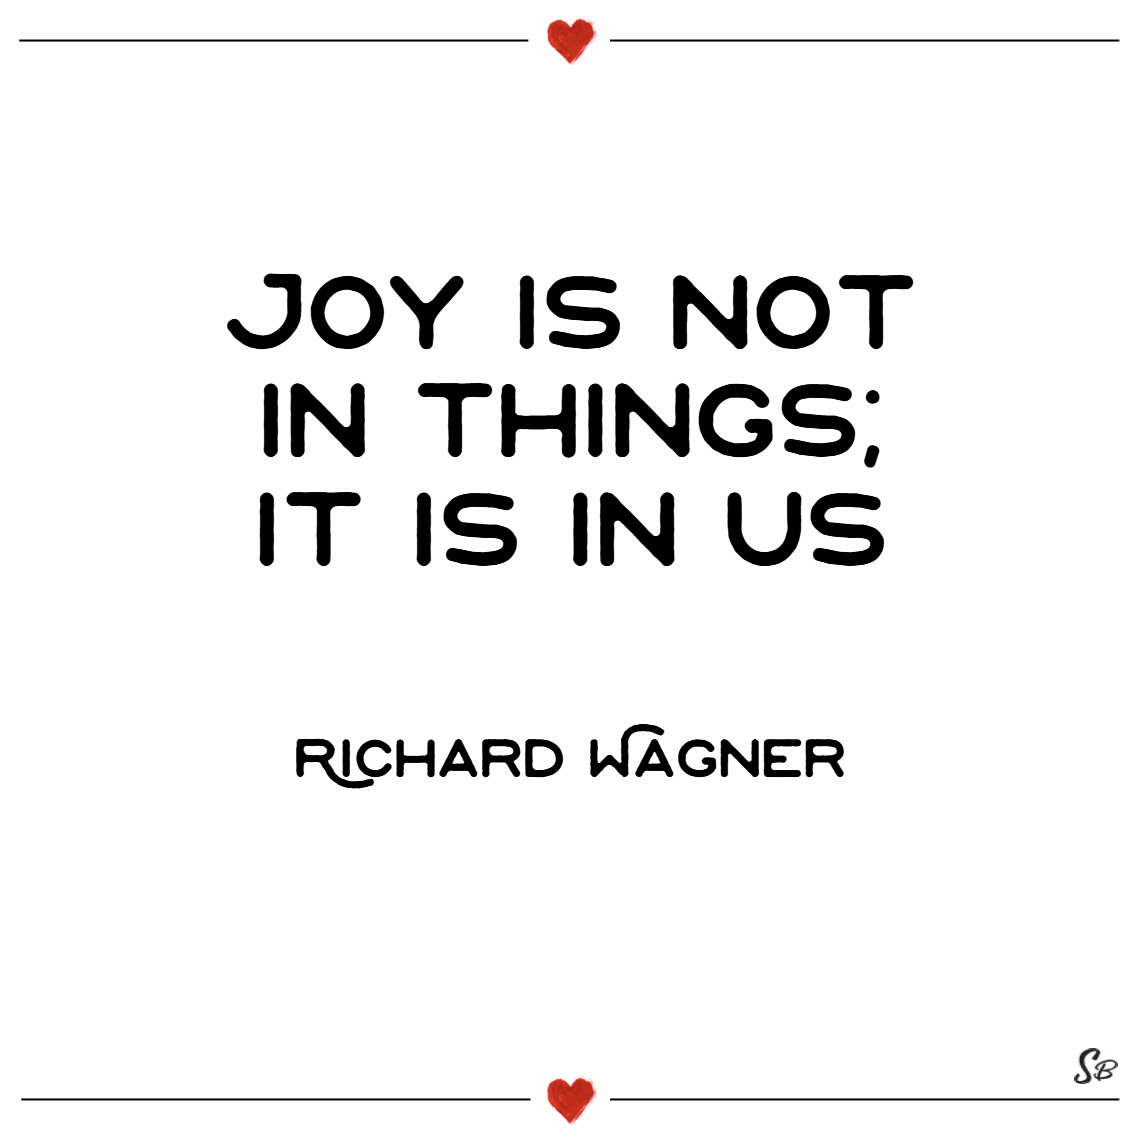 Joy is not in things; it is in us. – richard wagner